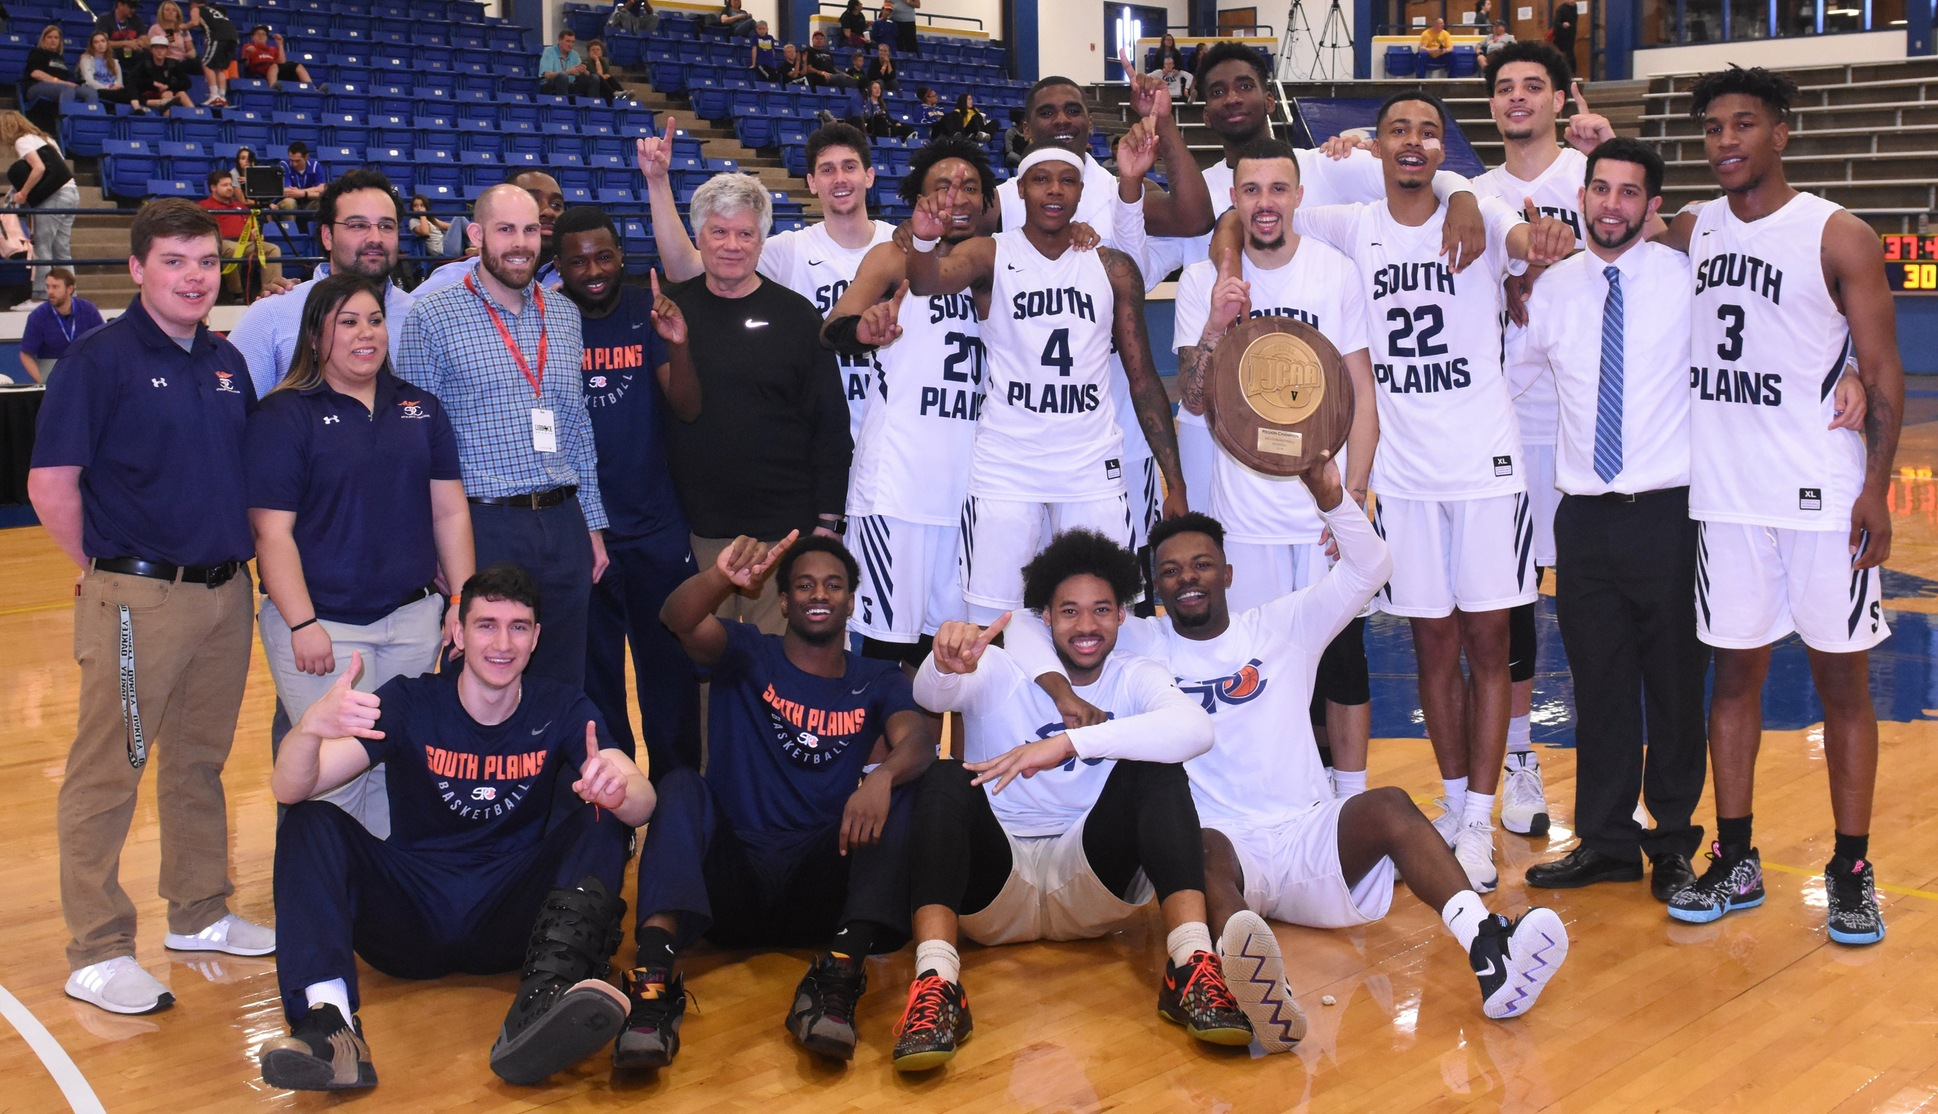 Texans capture Region V title, sink Odessa 101-92 to advance to 2018 NJCAA Men's Basketball National Tournament